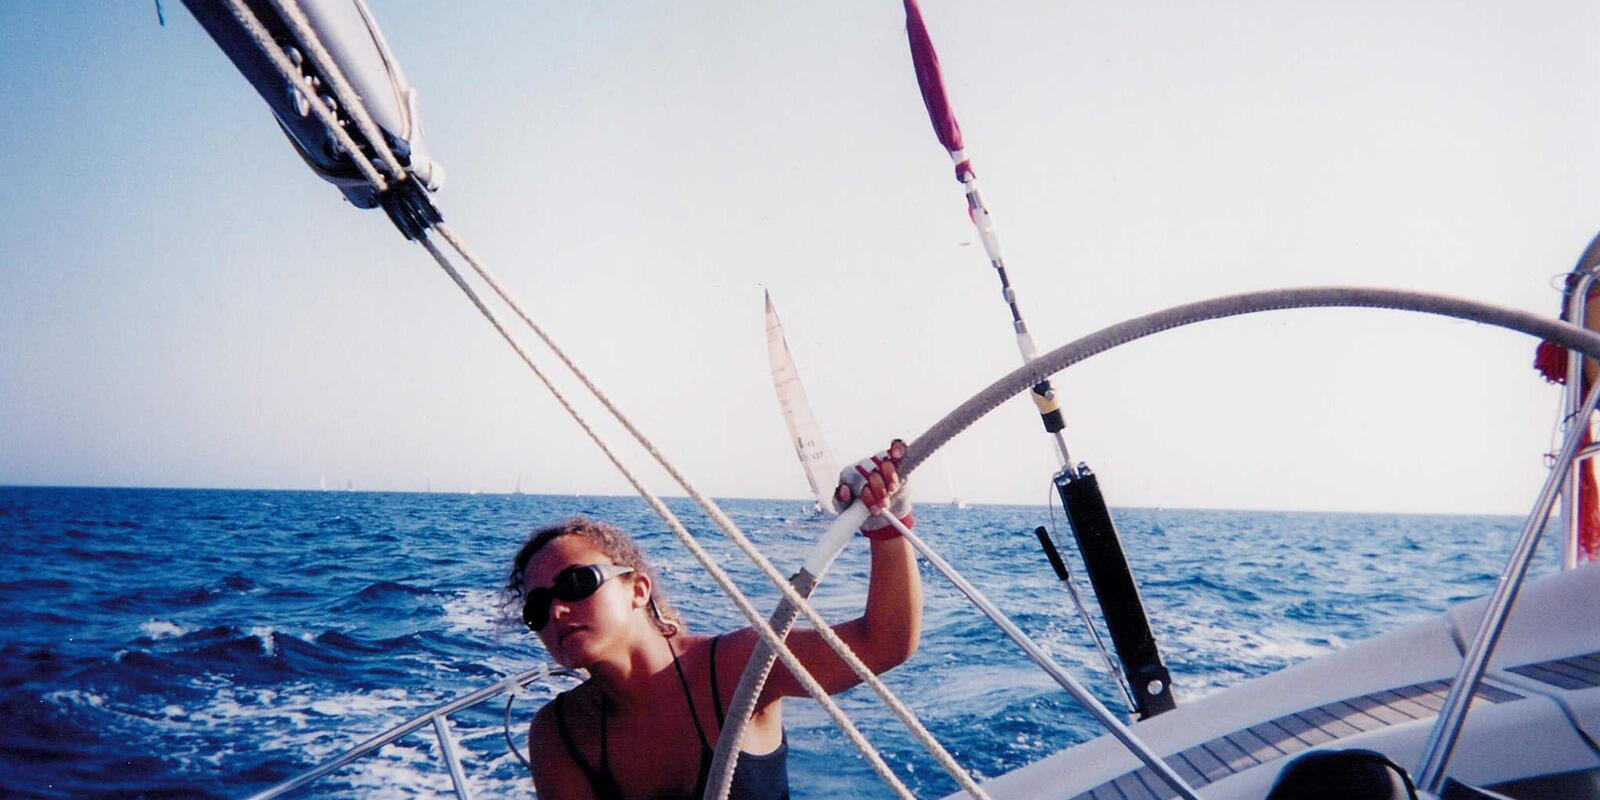 Holiday sailing school in Sanremo -  sailing on board cabin cruisers in complete relaxation